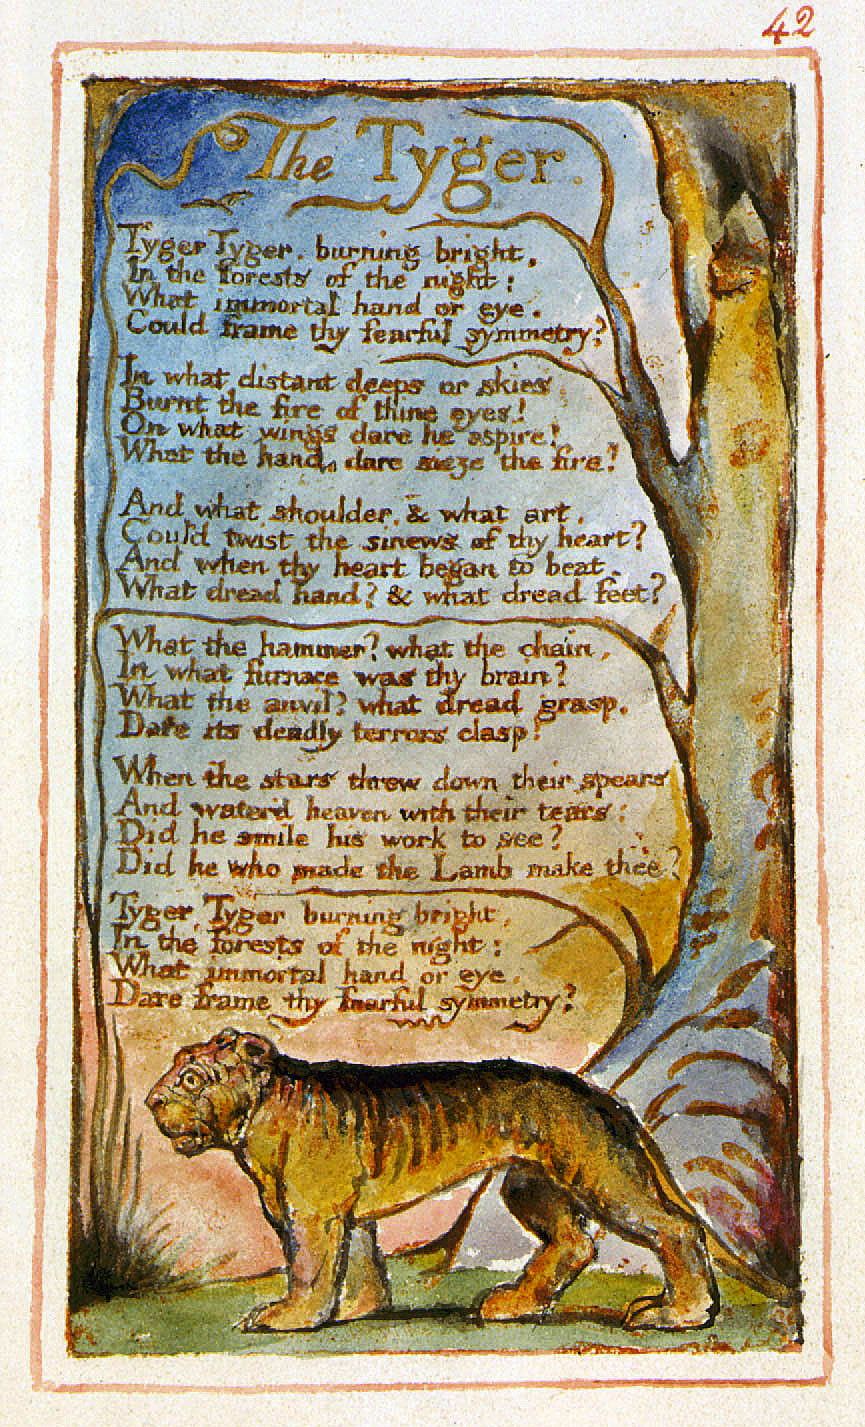 a comparison of william blakes the lamb and the tyger Comparison/contrast of the tyger and the lamb by blake essays william blake's the tyger and the lamb are both very short poems in which the author poses rhetorical questions to what, at a first glance, would appear to be a lamb and a tiger.